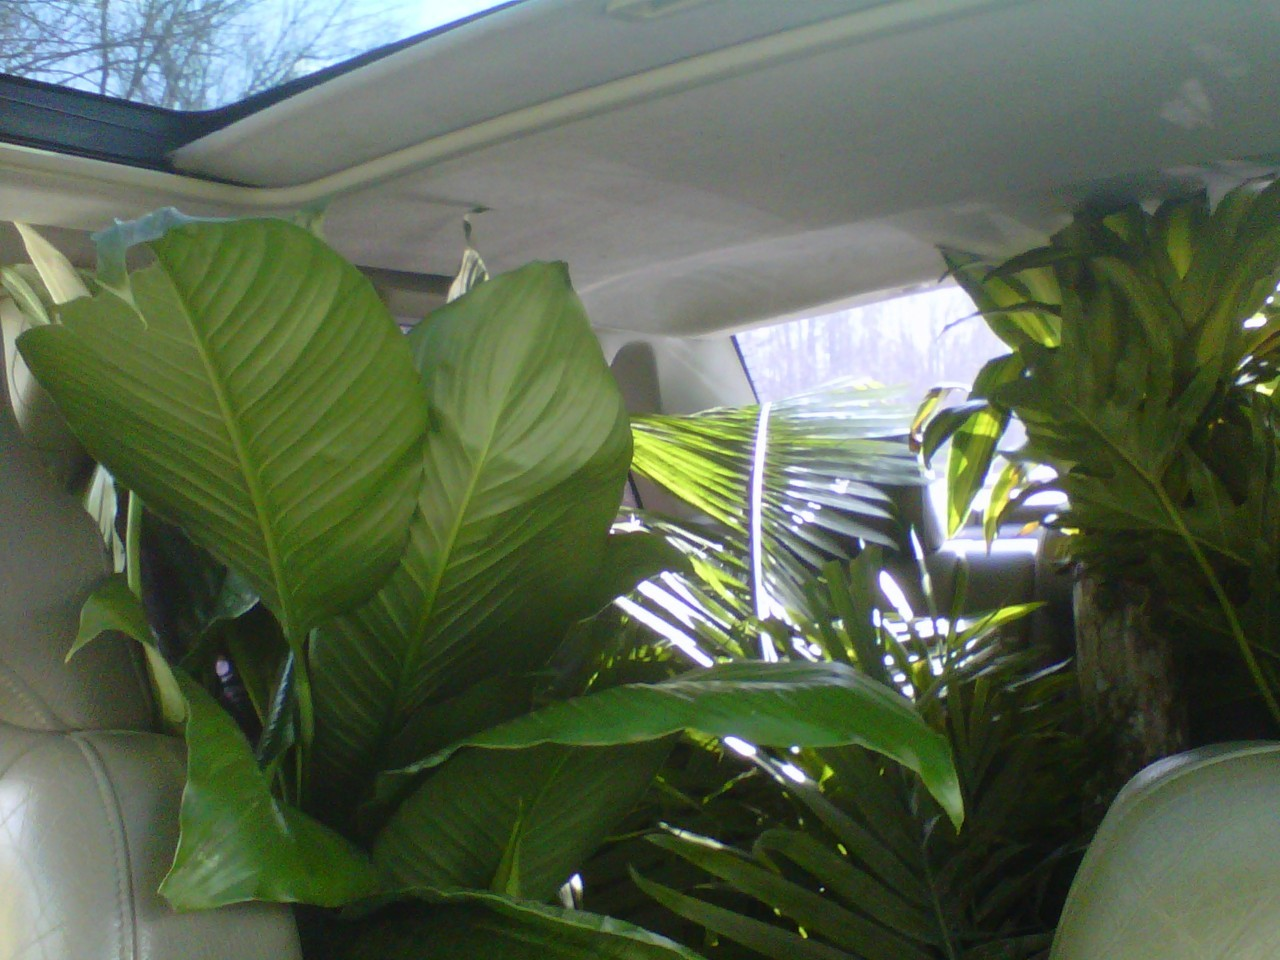 some floor plants in the back of my '98 Volvo S70, taken with my BlackBerry Curve in April 2012 http://www.jessicahans.com